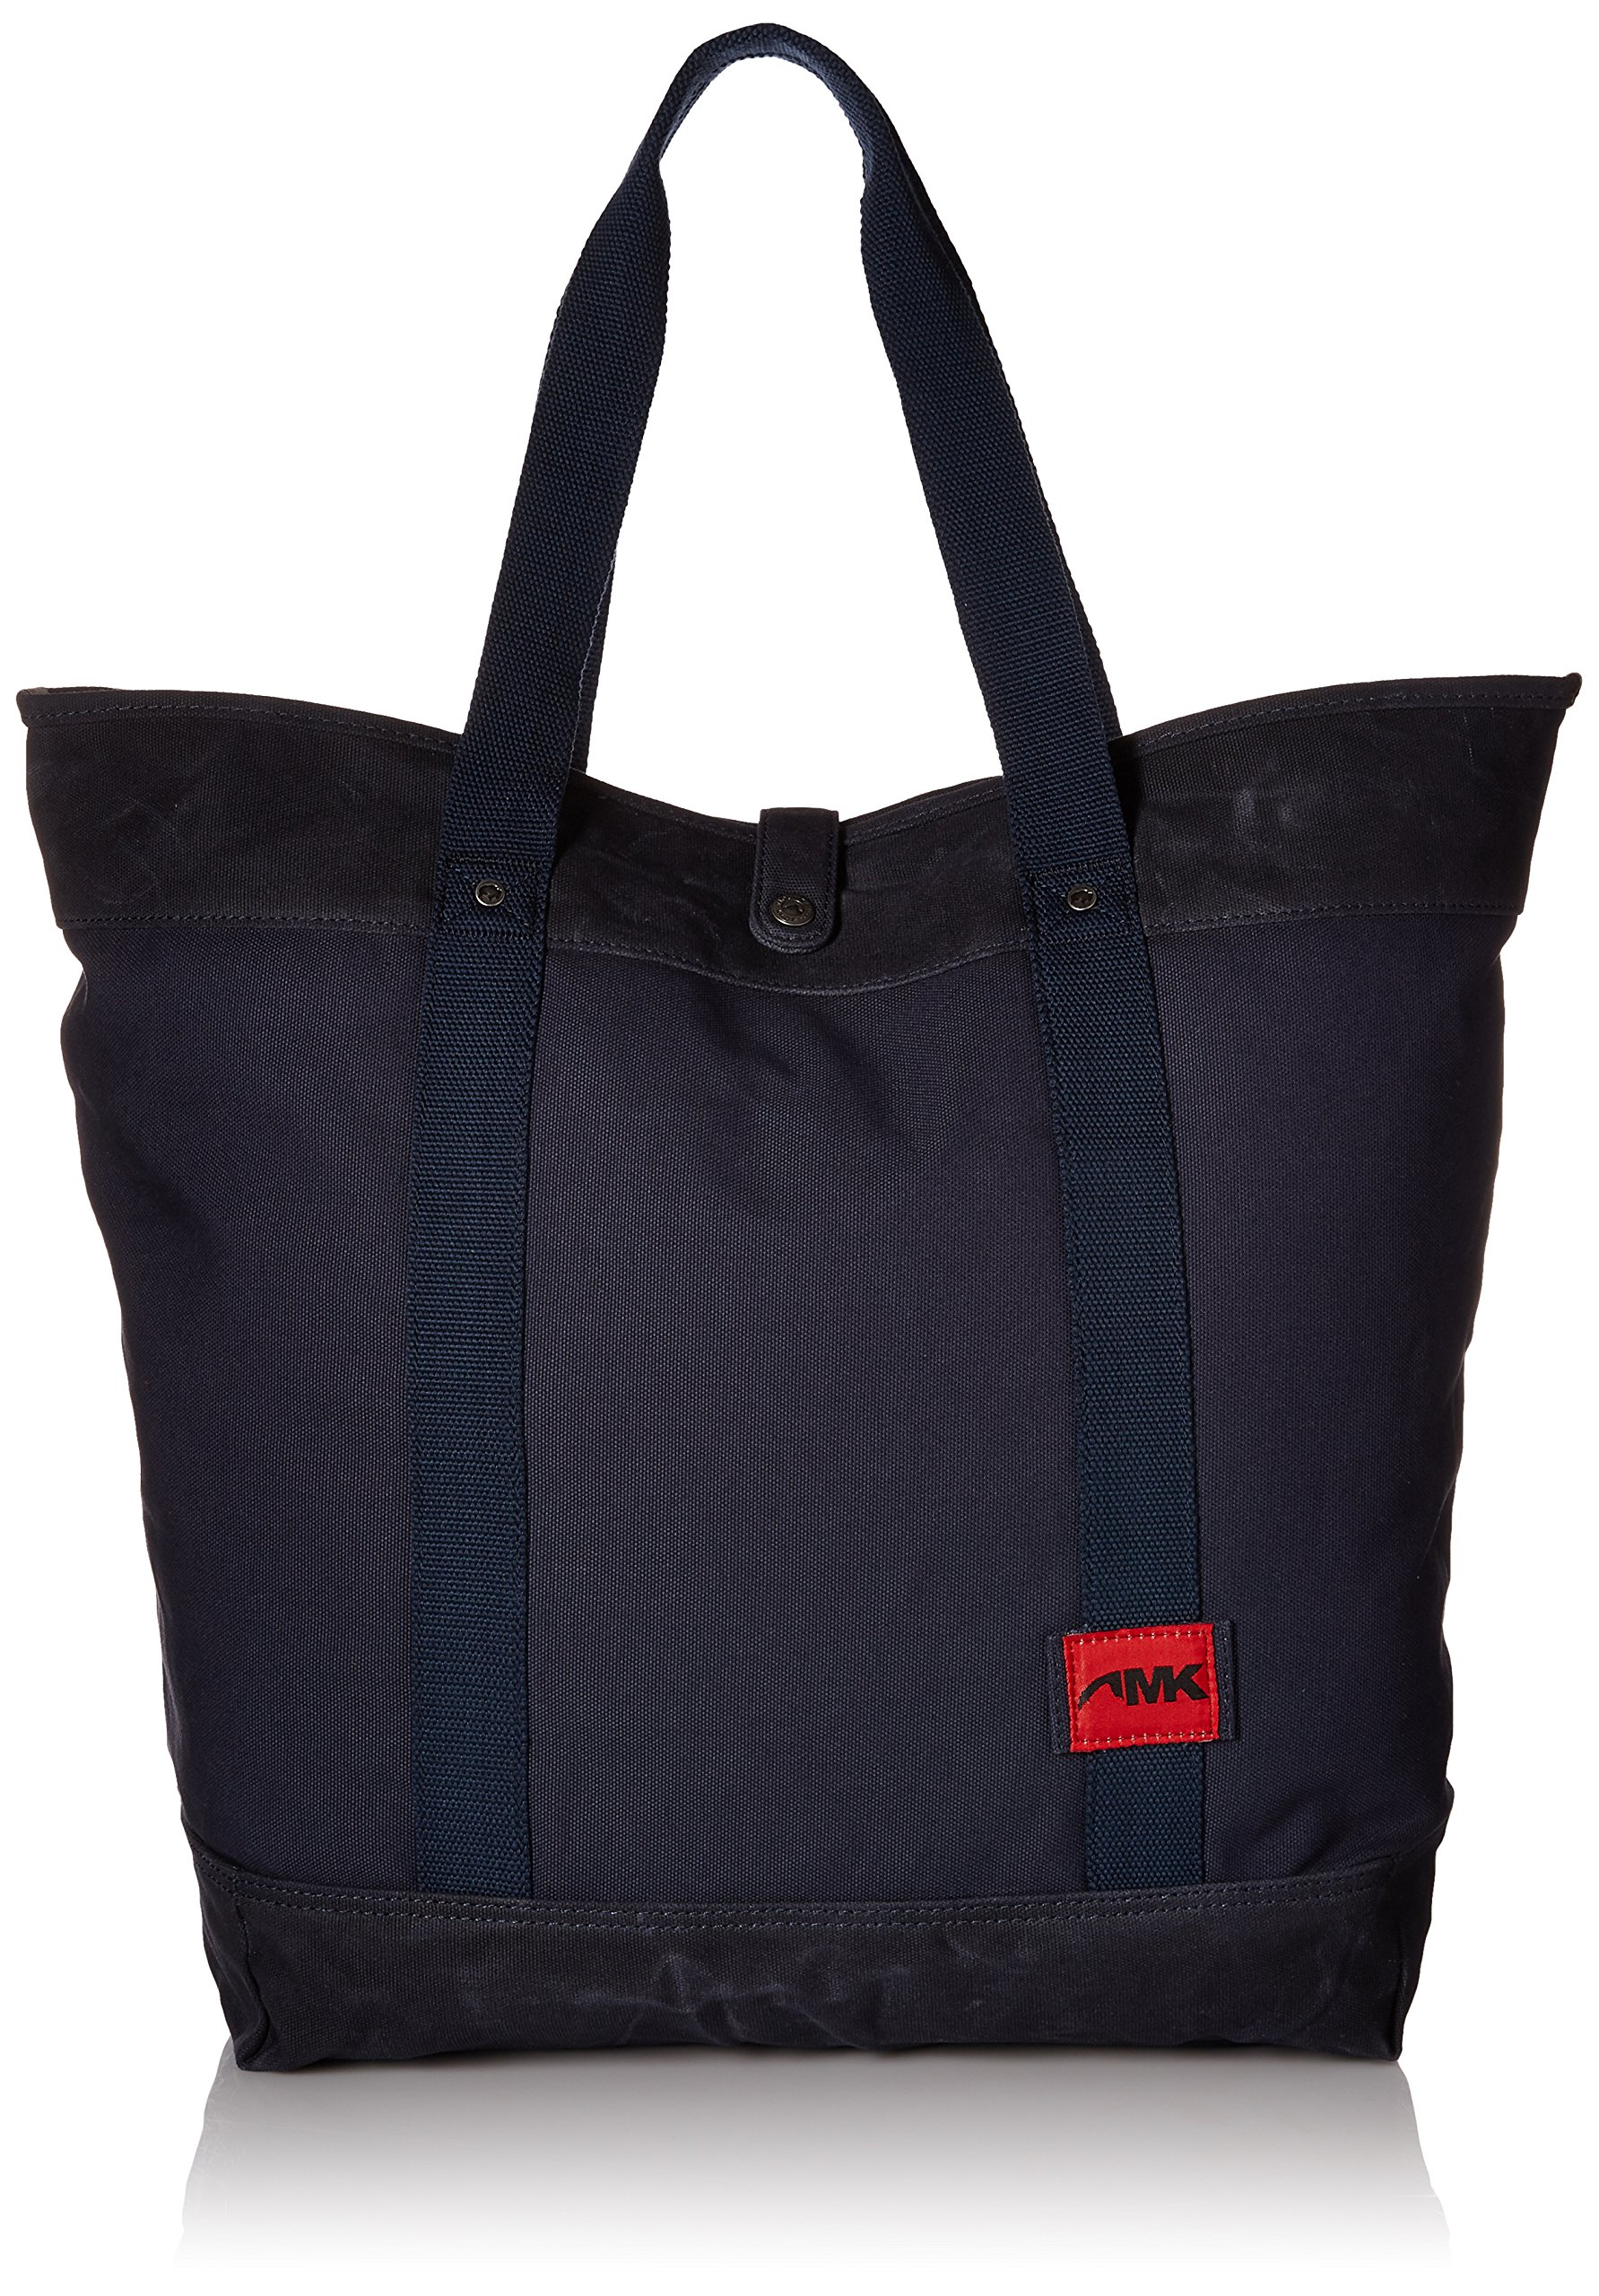 Mountain Khakis Carry All Tote Bag, Navy, One Size